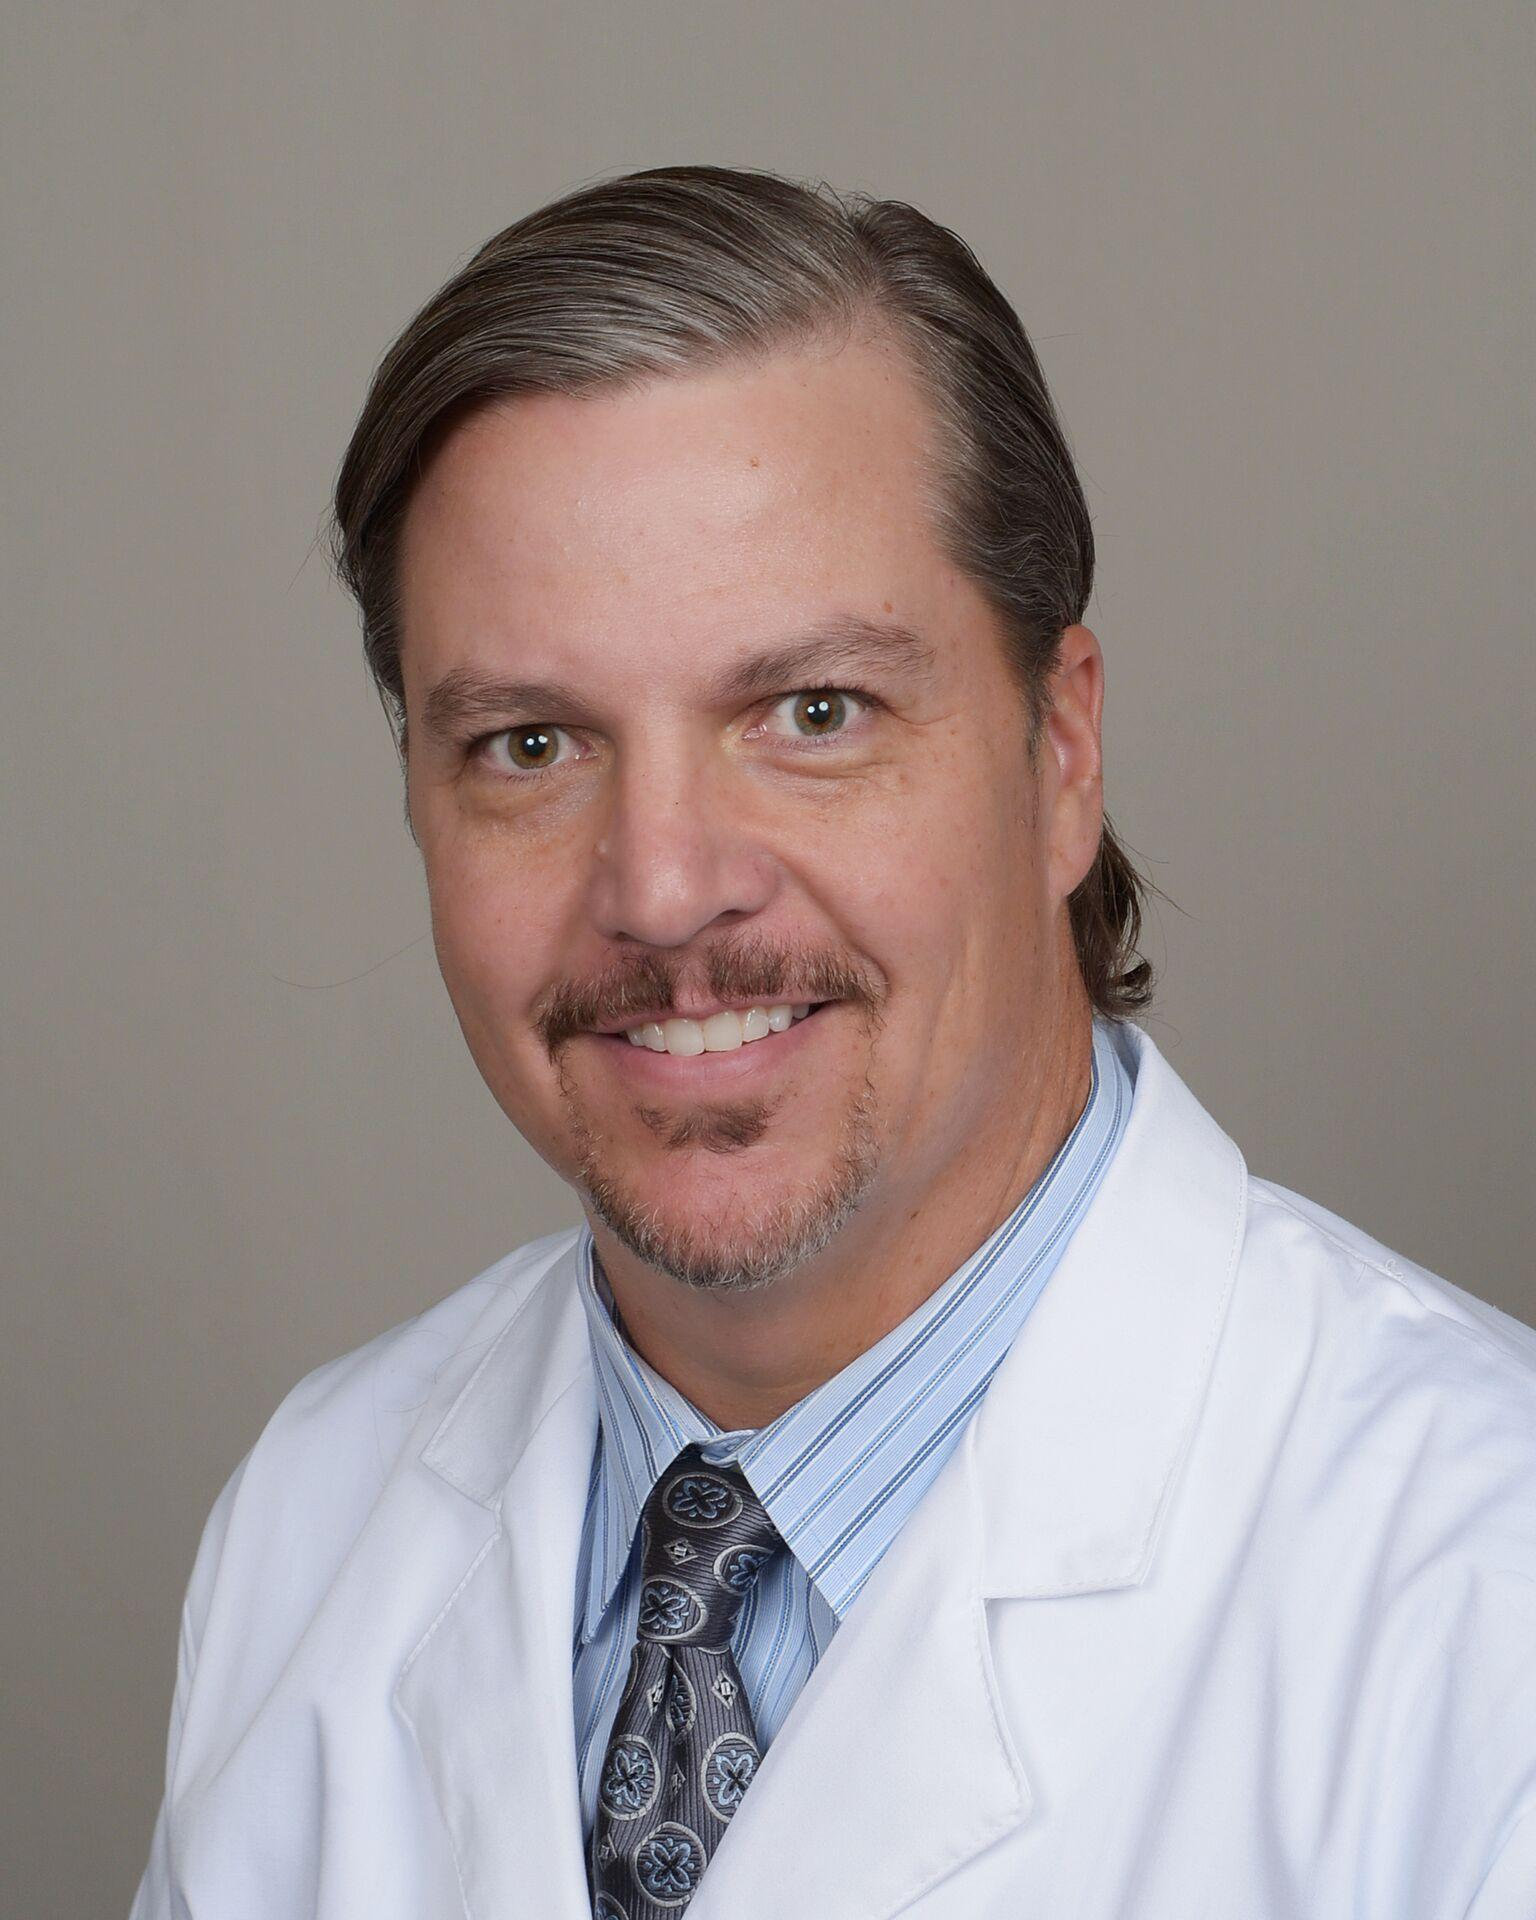 Profile Photo of Dr. Joe Mayes -